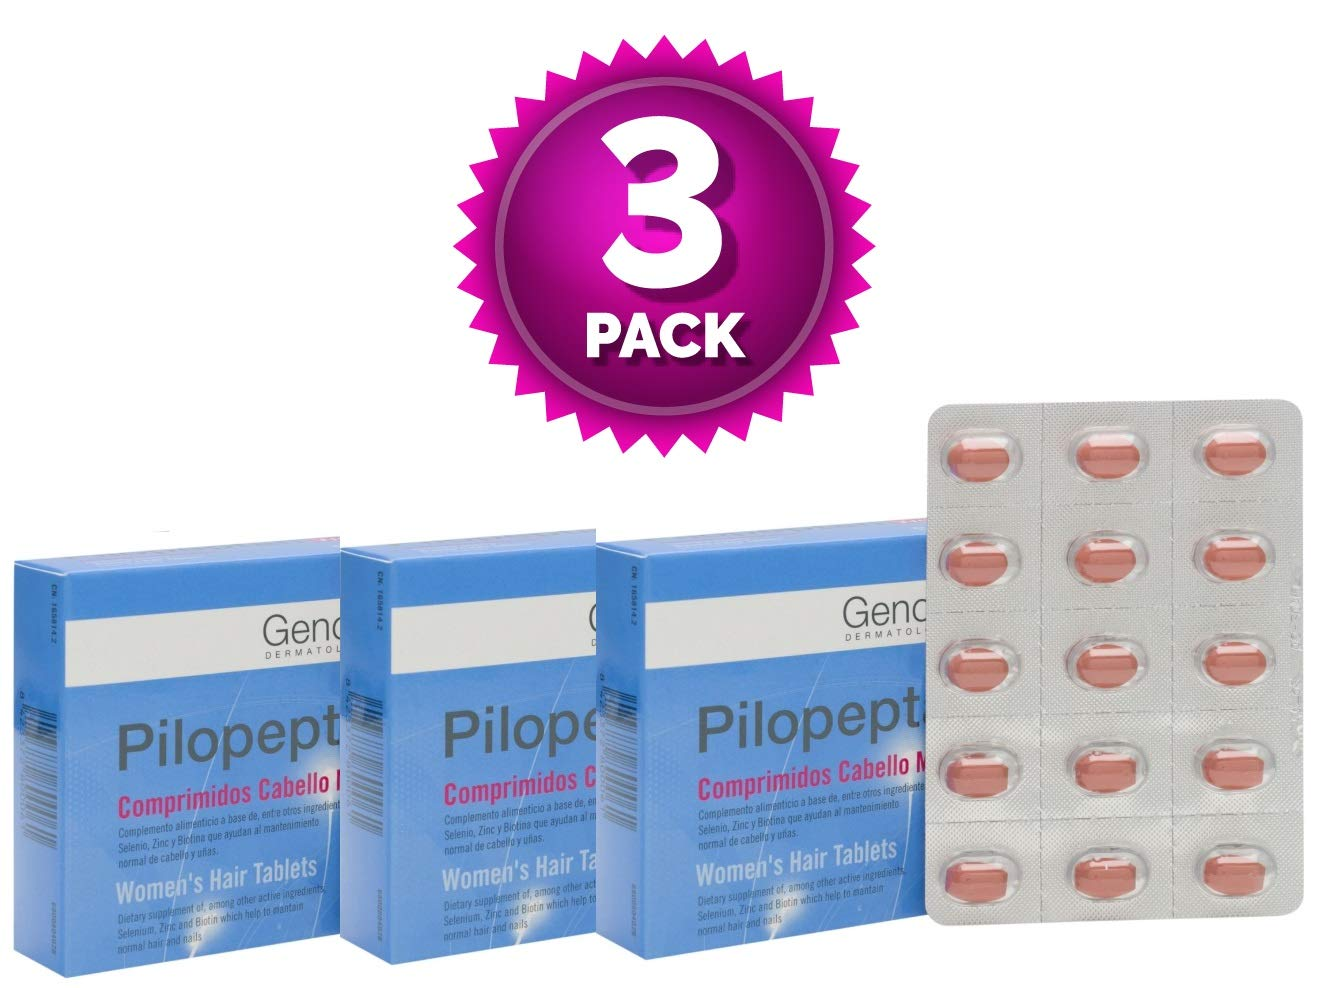 Amazon.com : 3 Pack Genové Pilopeptan For Woman 30 x 3 (90 Tablets) - Hair Regrowth Treatment - Stop Hair Loss - Nail and Hair Treatment : Beauty